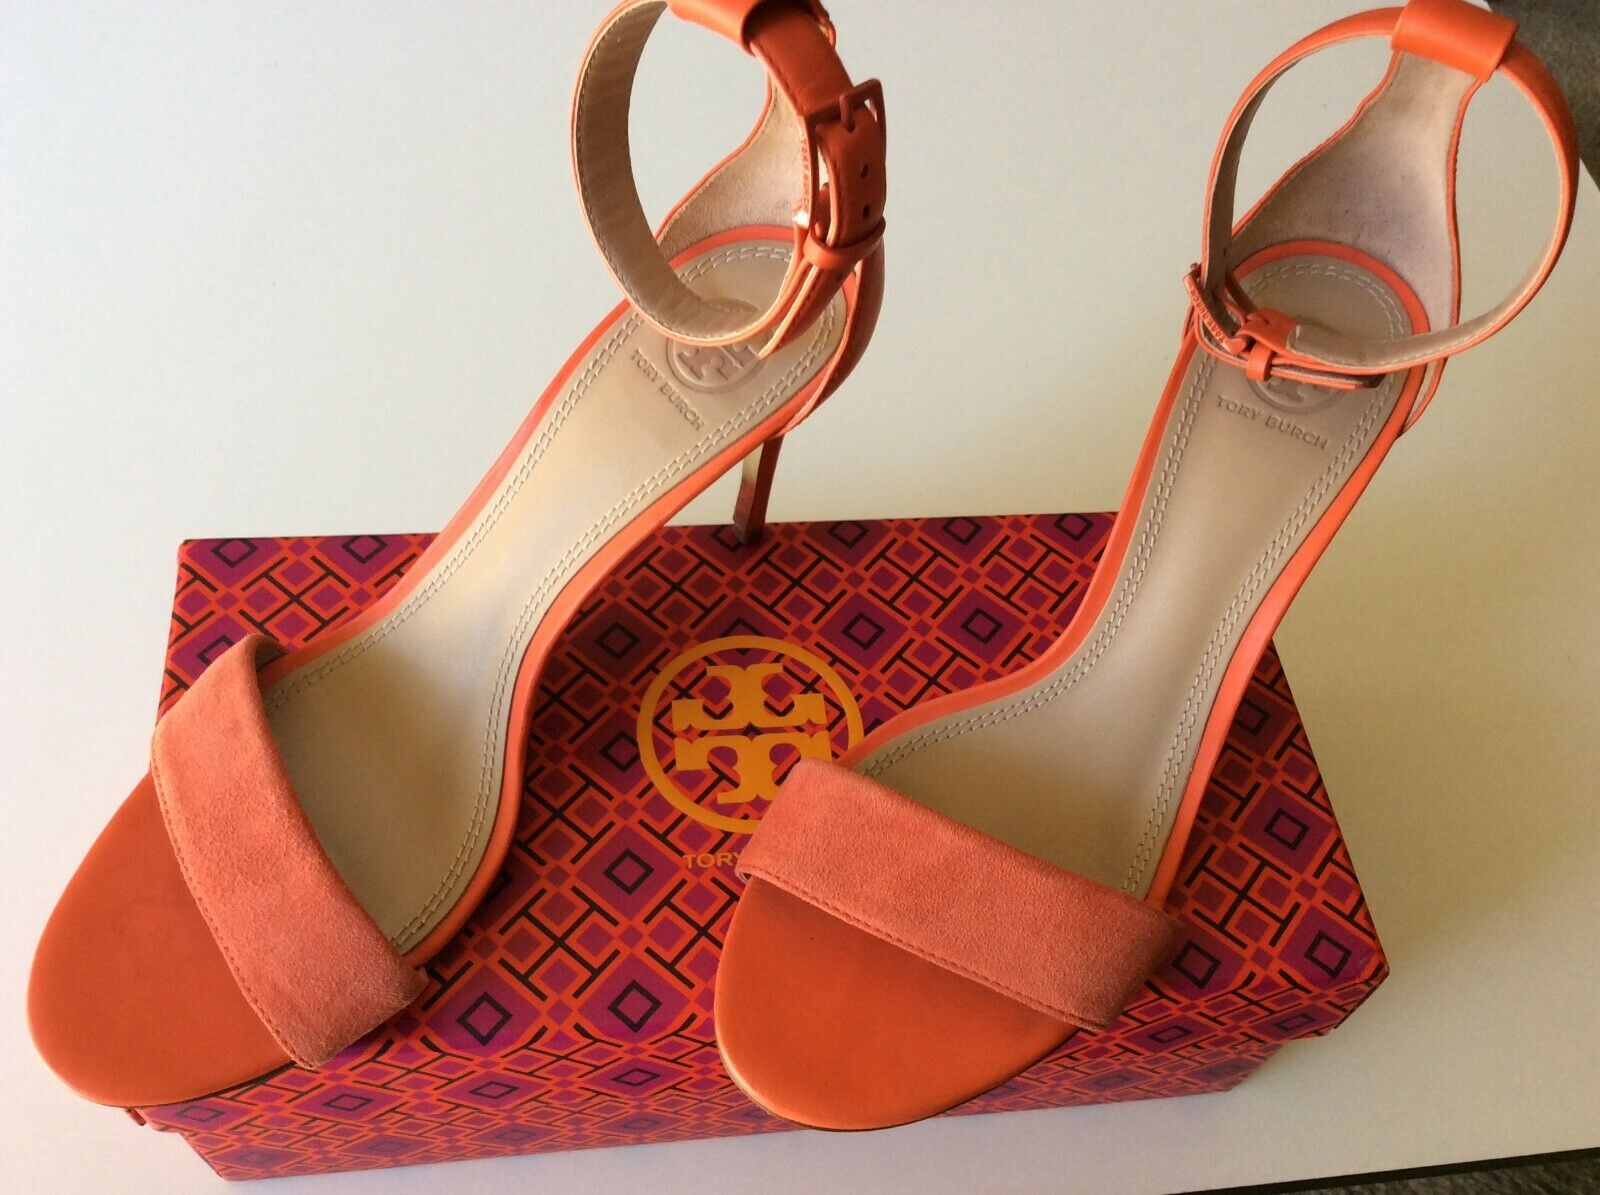 TORY BURCH pink leather & suede ankle ankle ankle strap stilletto heels sz 9.5 165c75